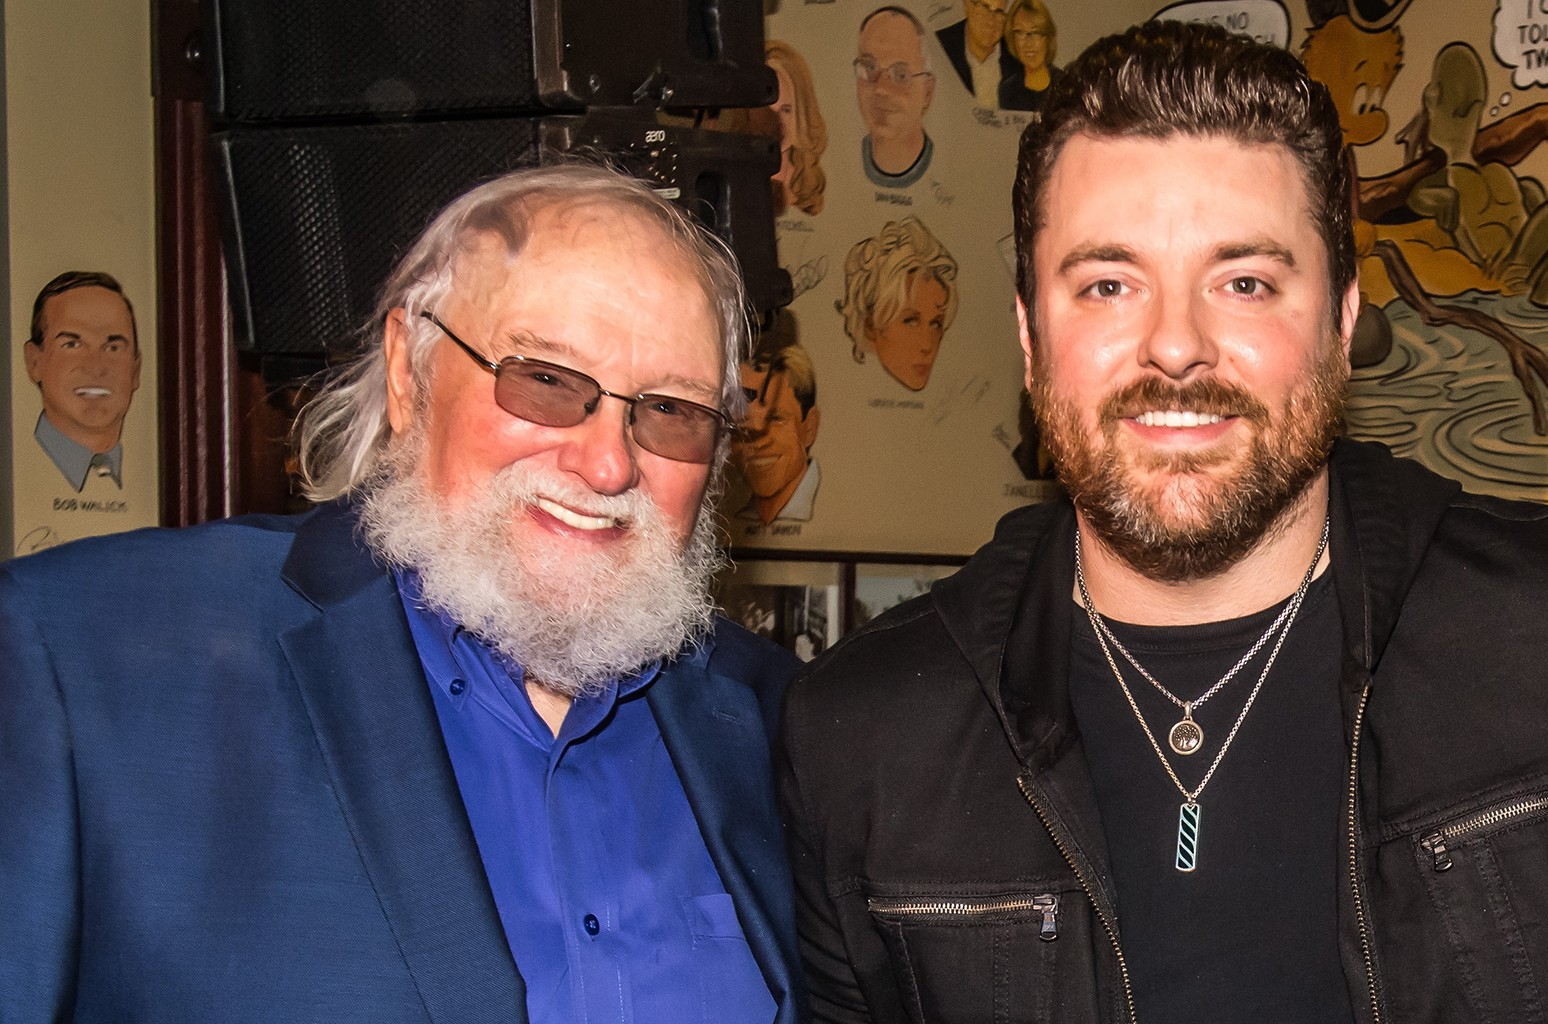 Charlie Daniels Chris Young